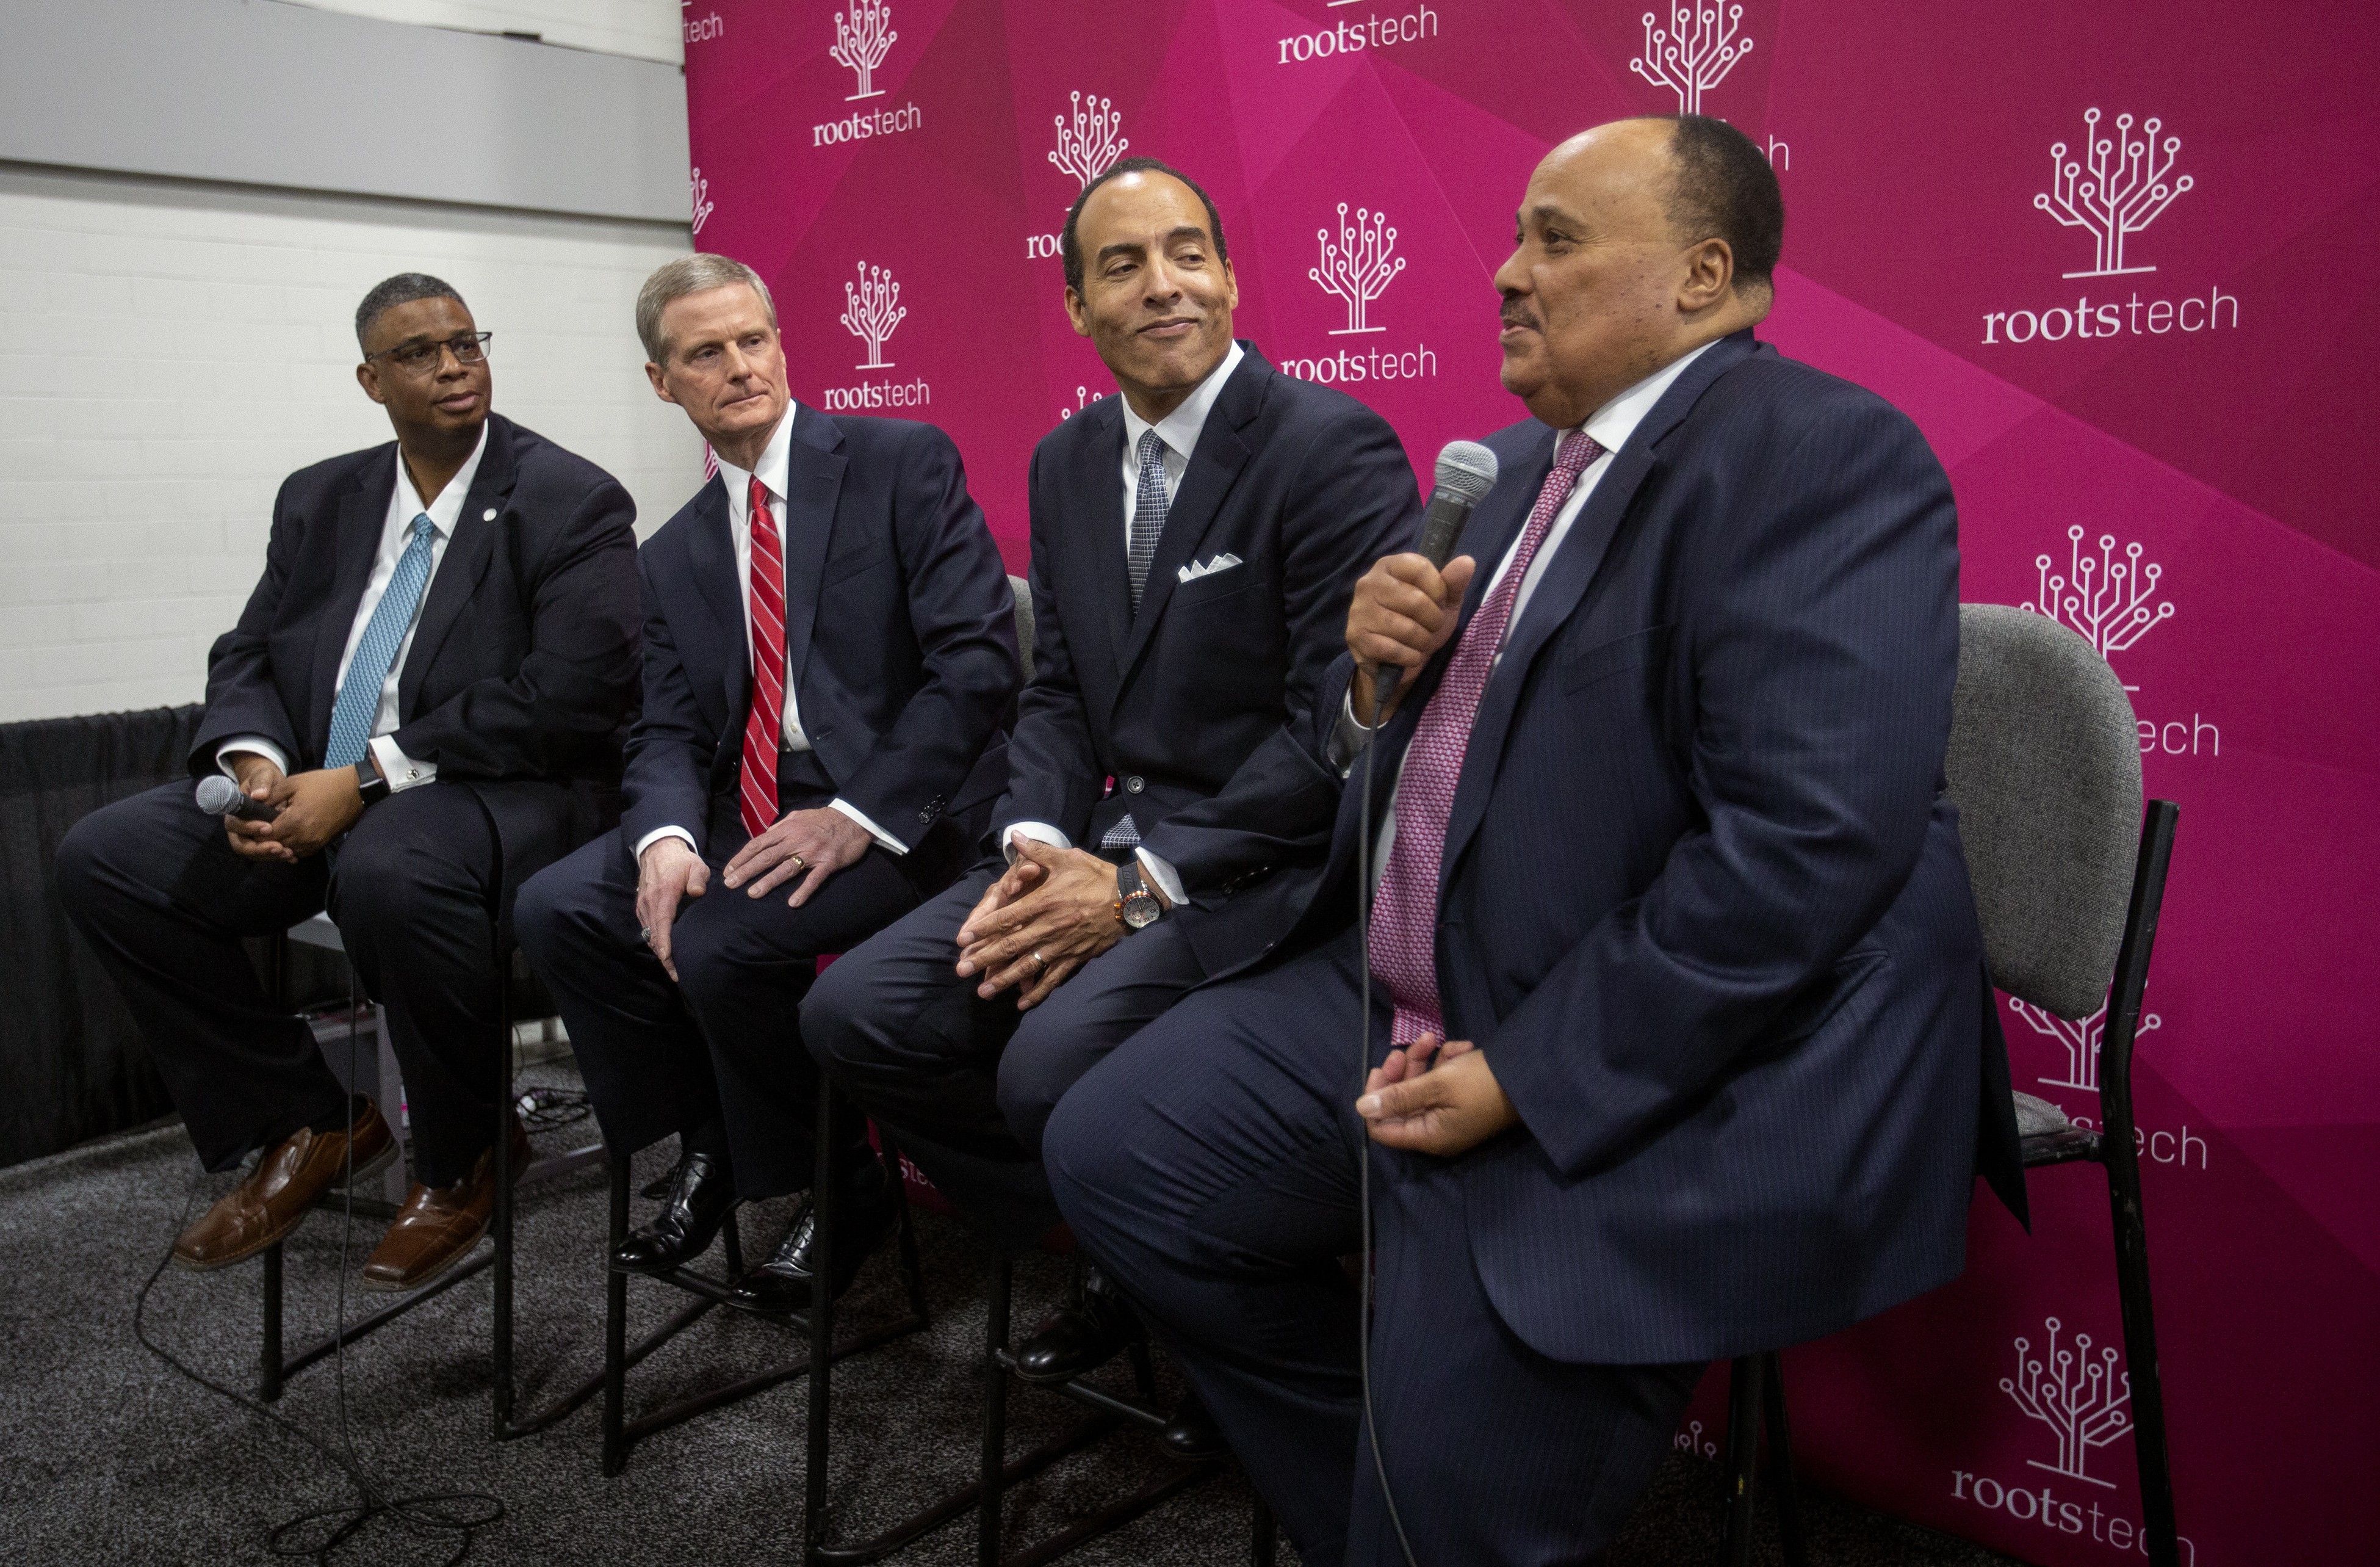 Martin Luther King III, son of the Rev. Martin Luther King Jr., speaks at a RootsTech press conference.